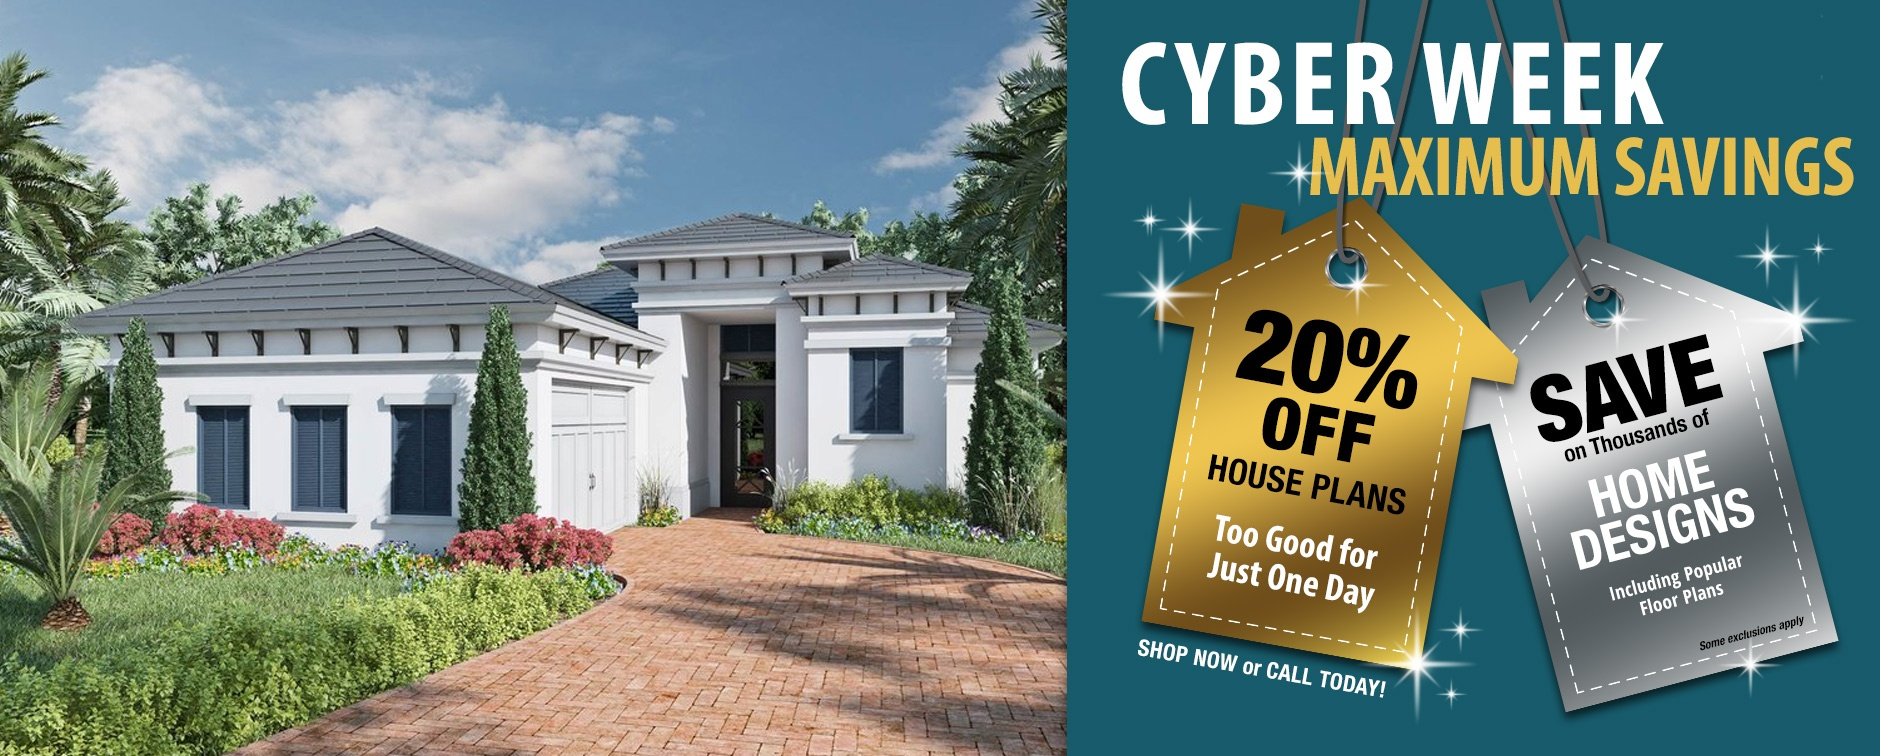 Dream House Plan Sale 20% Off